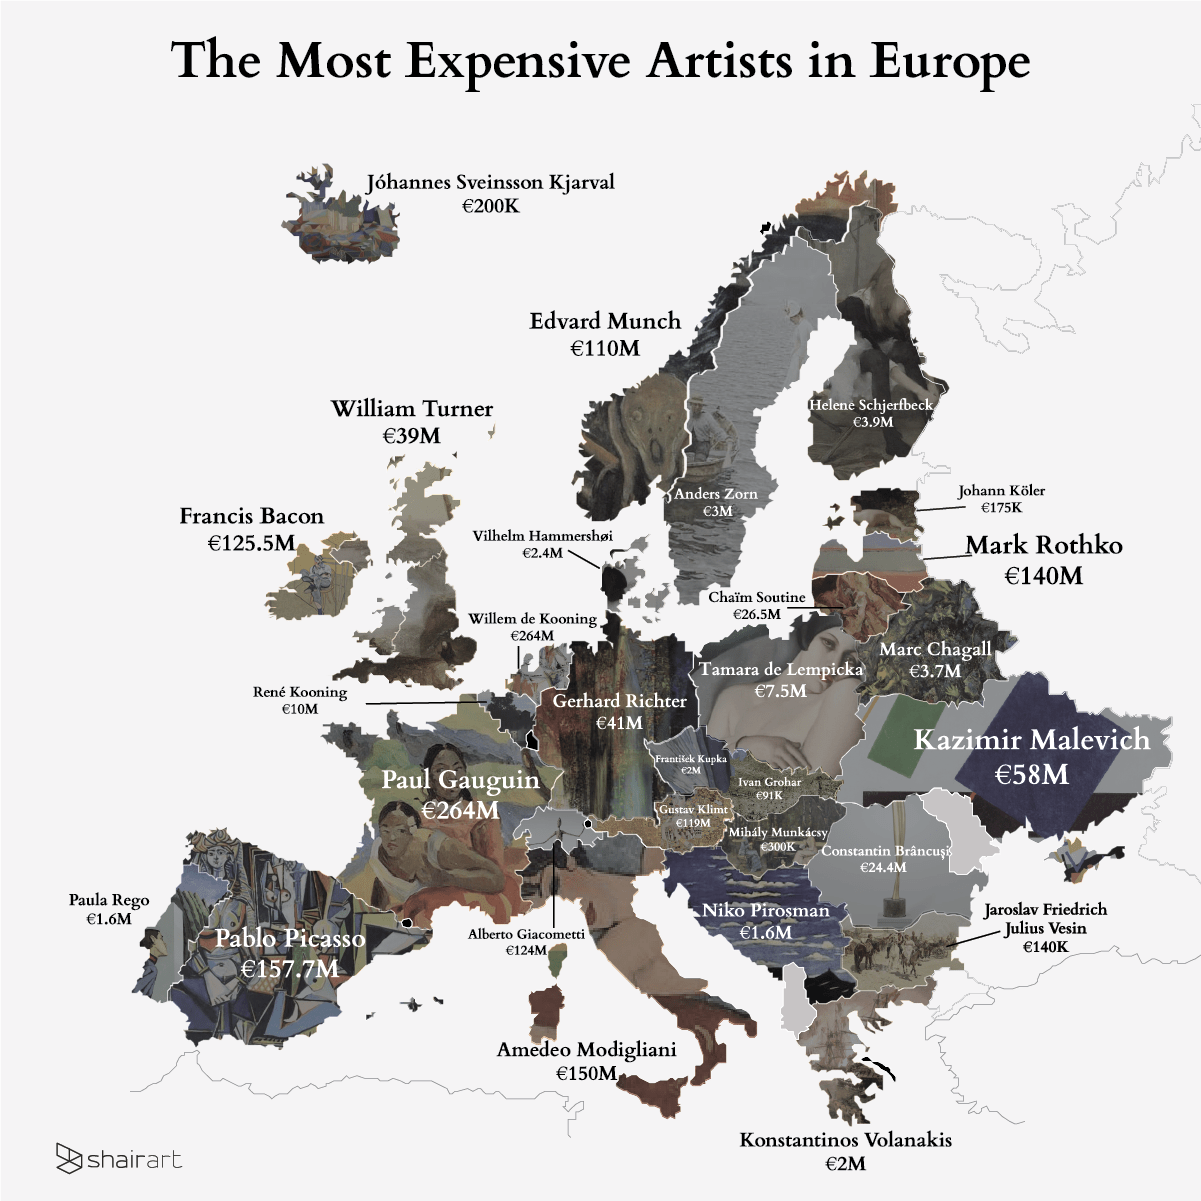 This map shows the most expensive artists in Europe